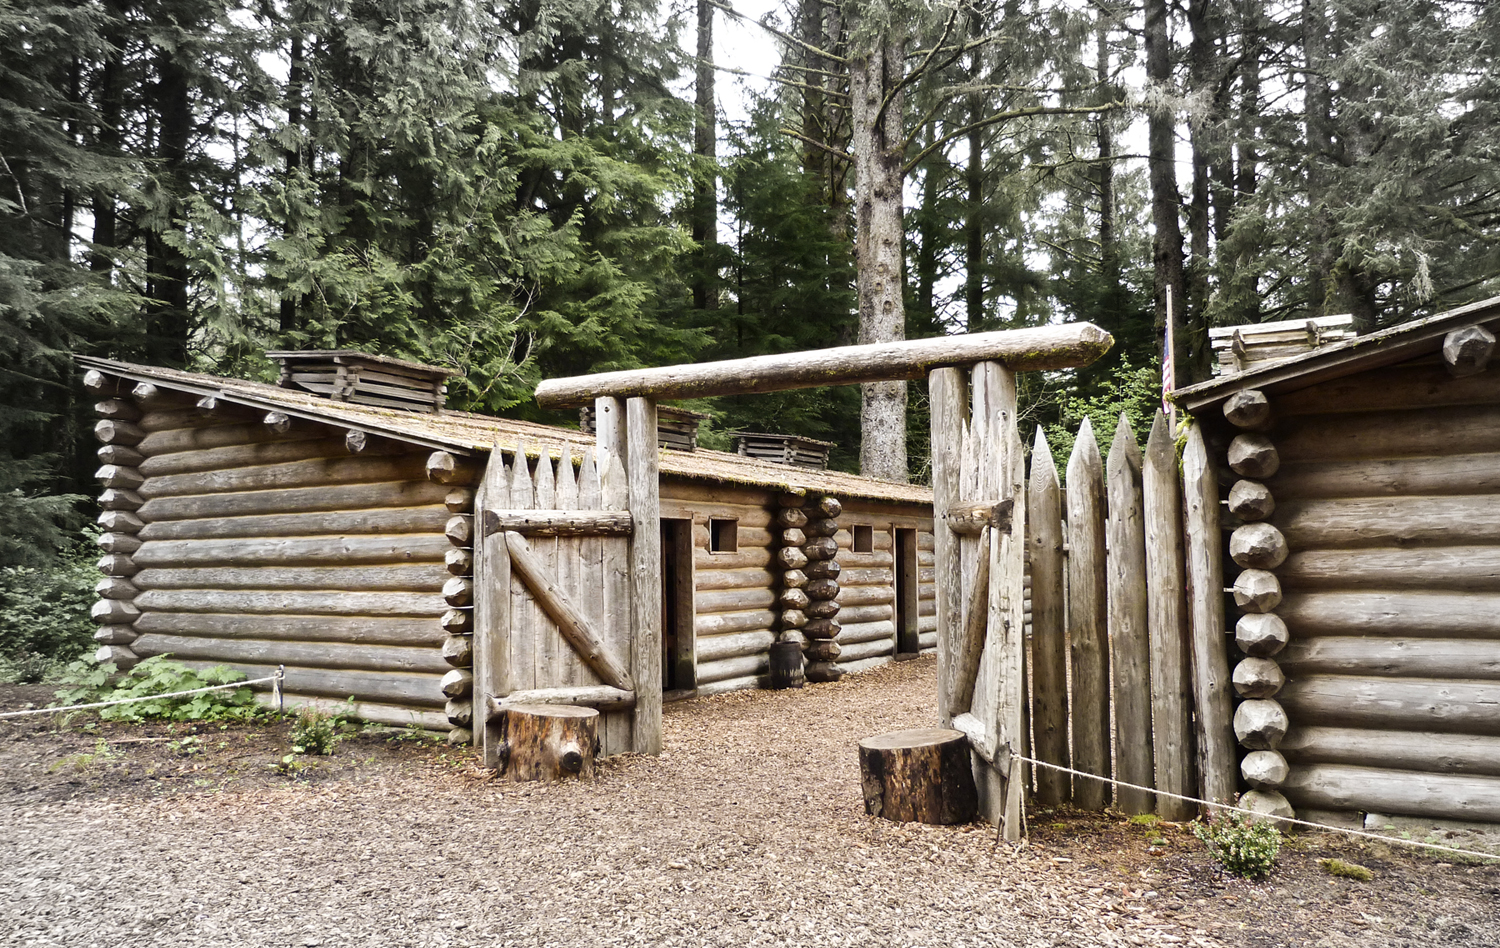 fort-clatsop-oregon-rainy-day-photo-kim-rose-adams